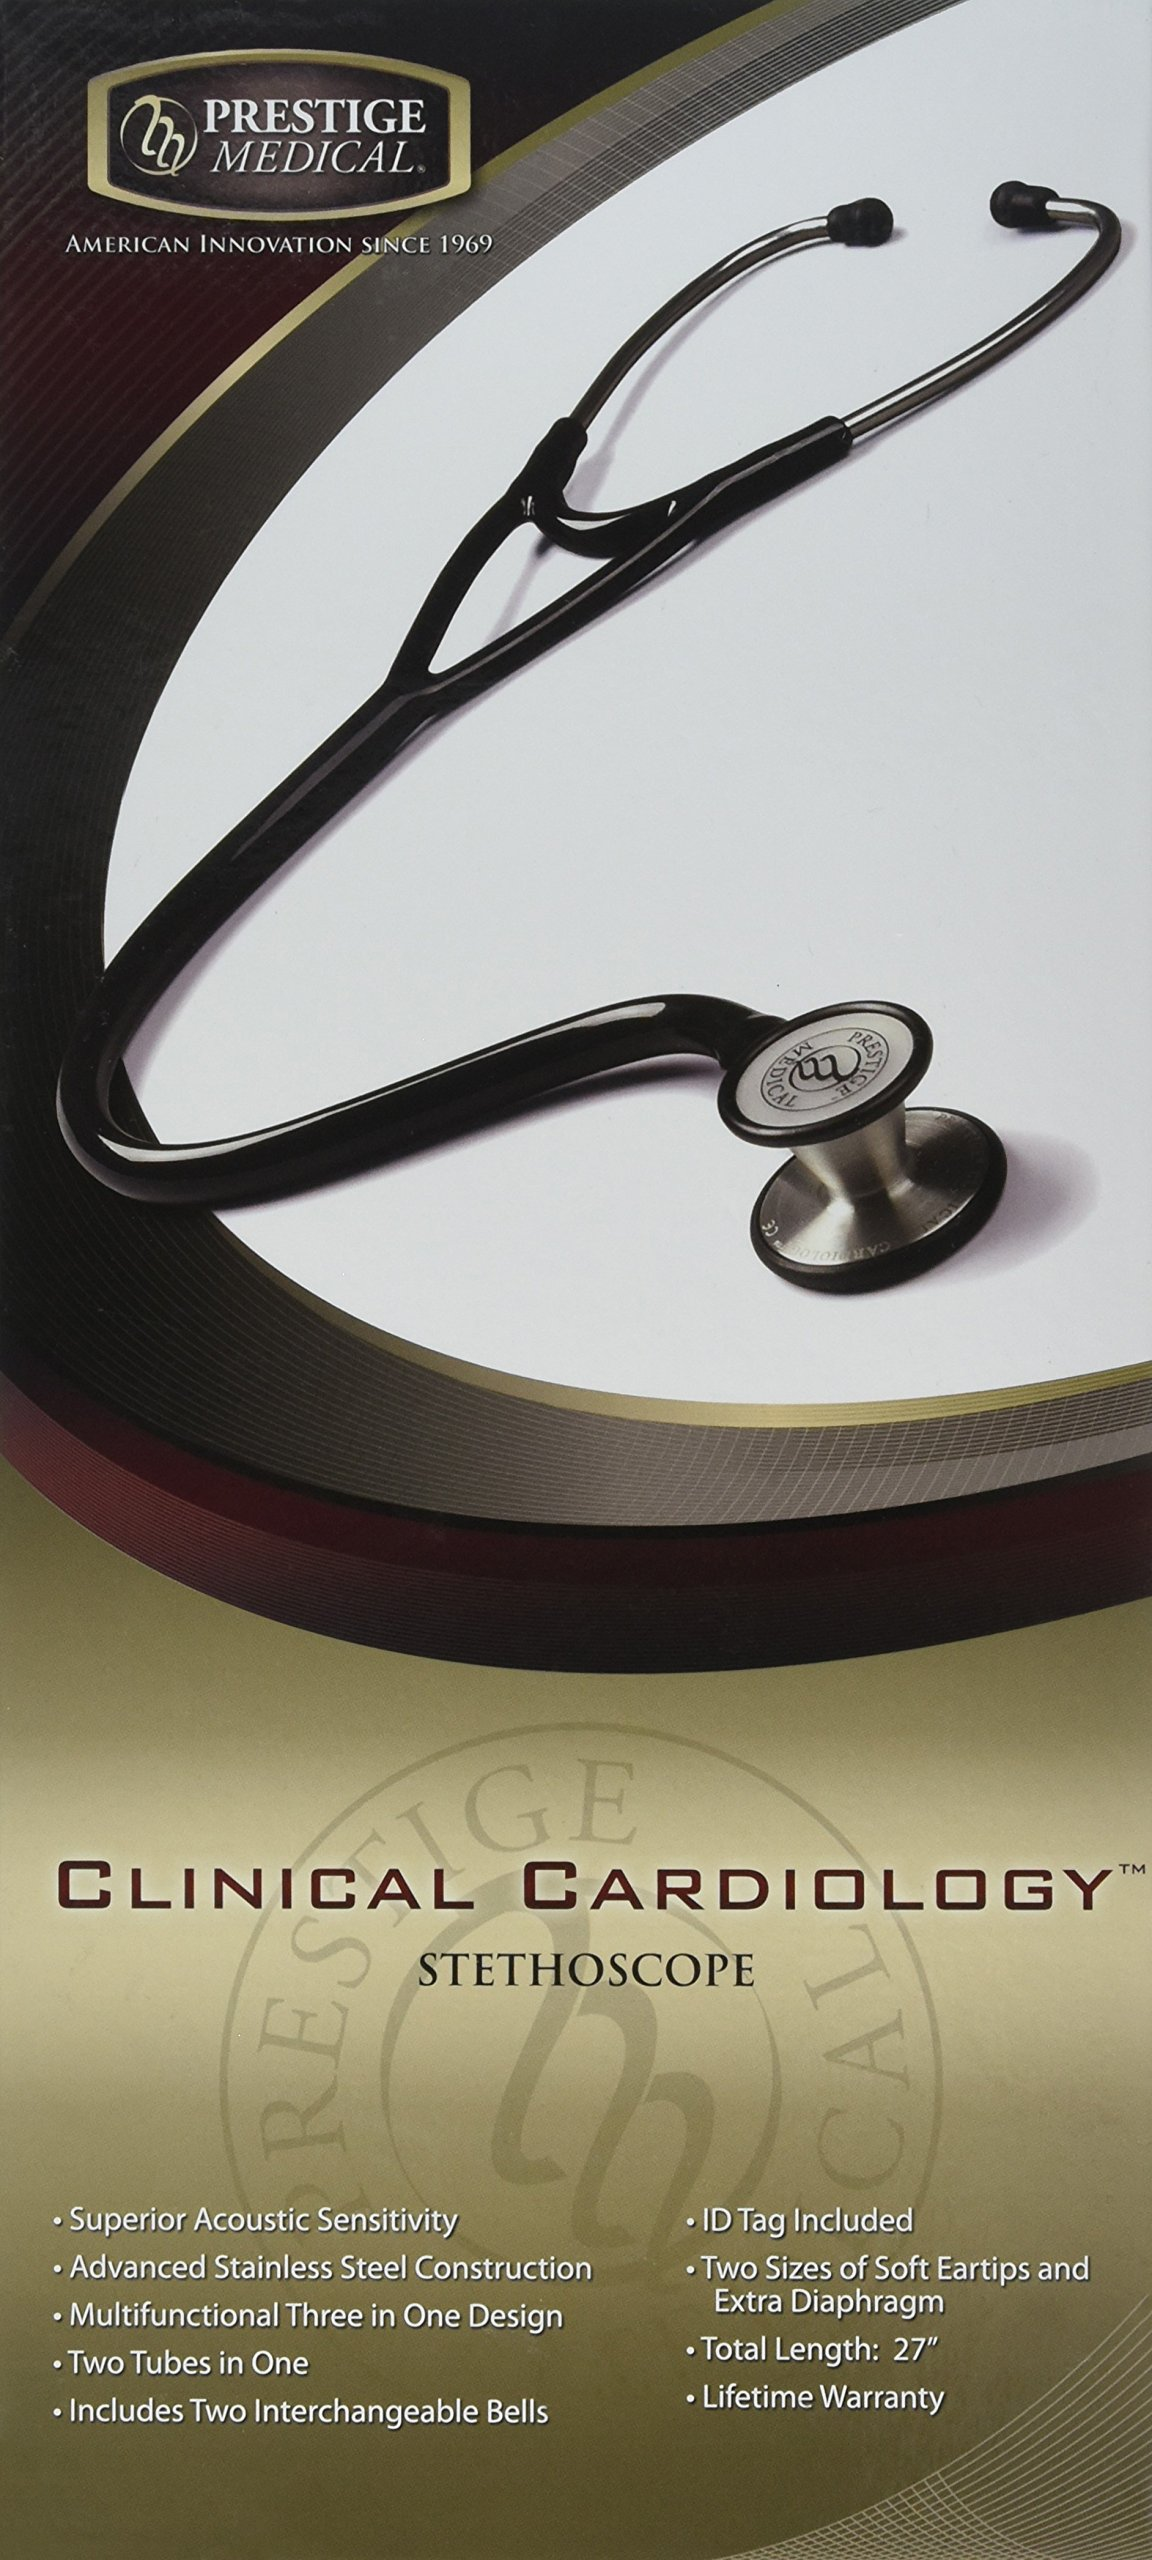 Prestige Medical Clinical Cardiology Stethoscope, Stealth by Prestige Medical (Image #1)